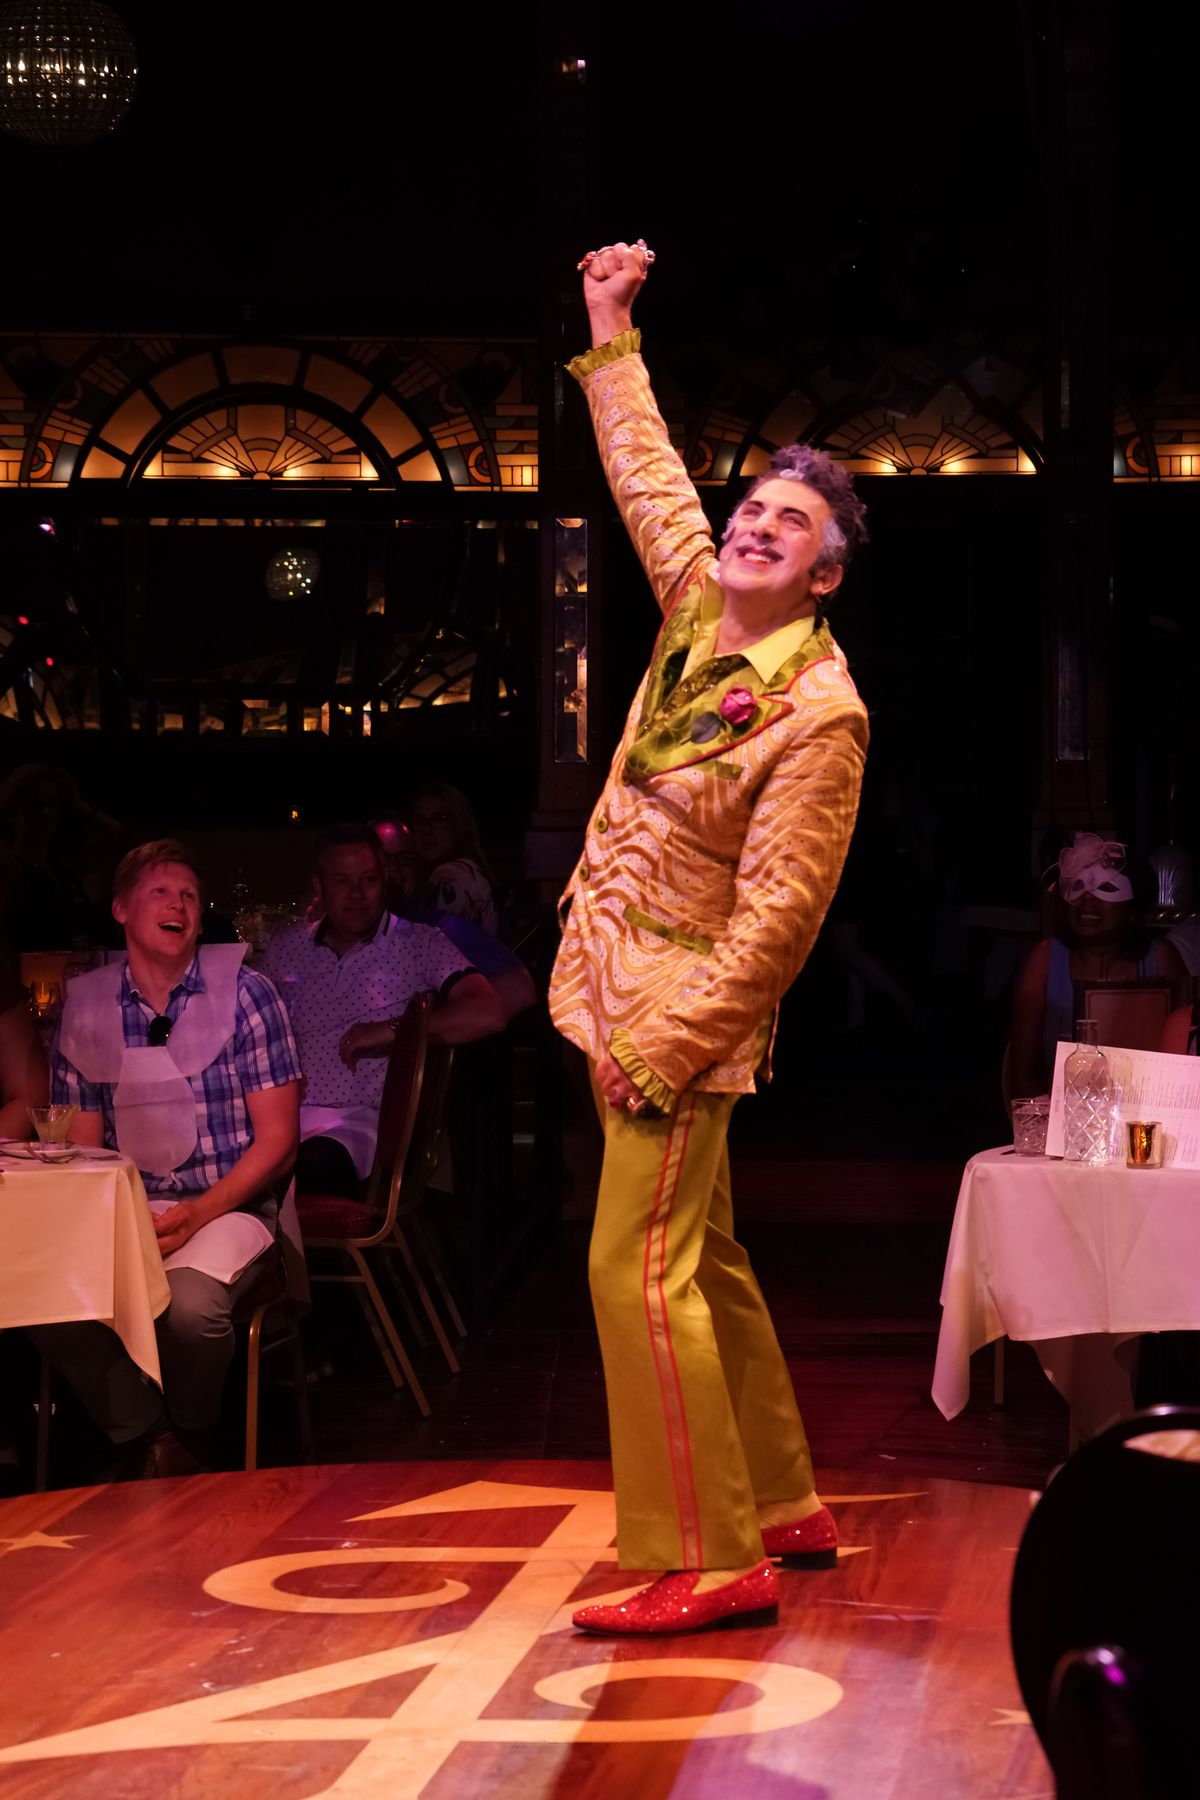 """Frank Ferrante as """"Chef"""" Caeser"""" holds court as the emcee in Teatro ZinZanni's production of """"Love, Chaos & Dinner"""" in Chicago."""